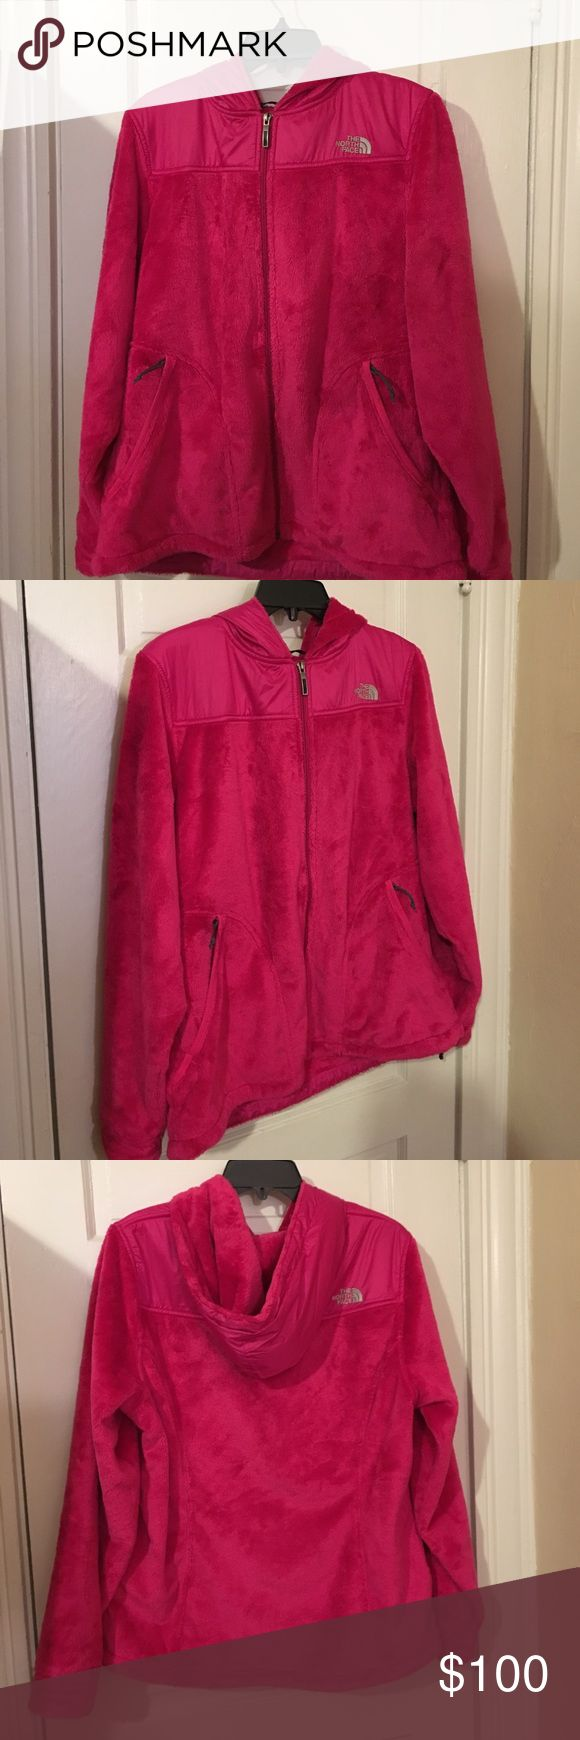 🔽REDUCEDNorth Face Women's Osito 2 Hooded Fleece Lightweight and super soft fleece zip up hooded coat from The North Face. Worn only once but I decided that pink was not my color. The North Face Jackets & Coats